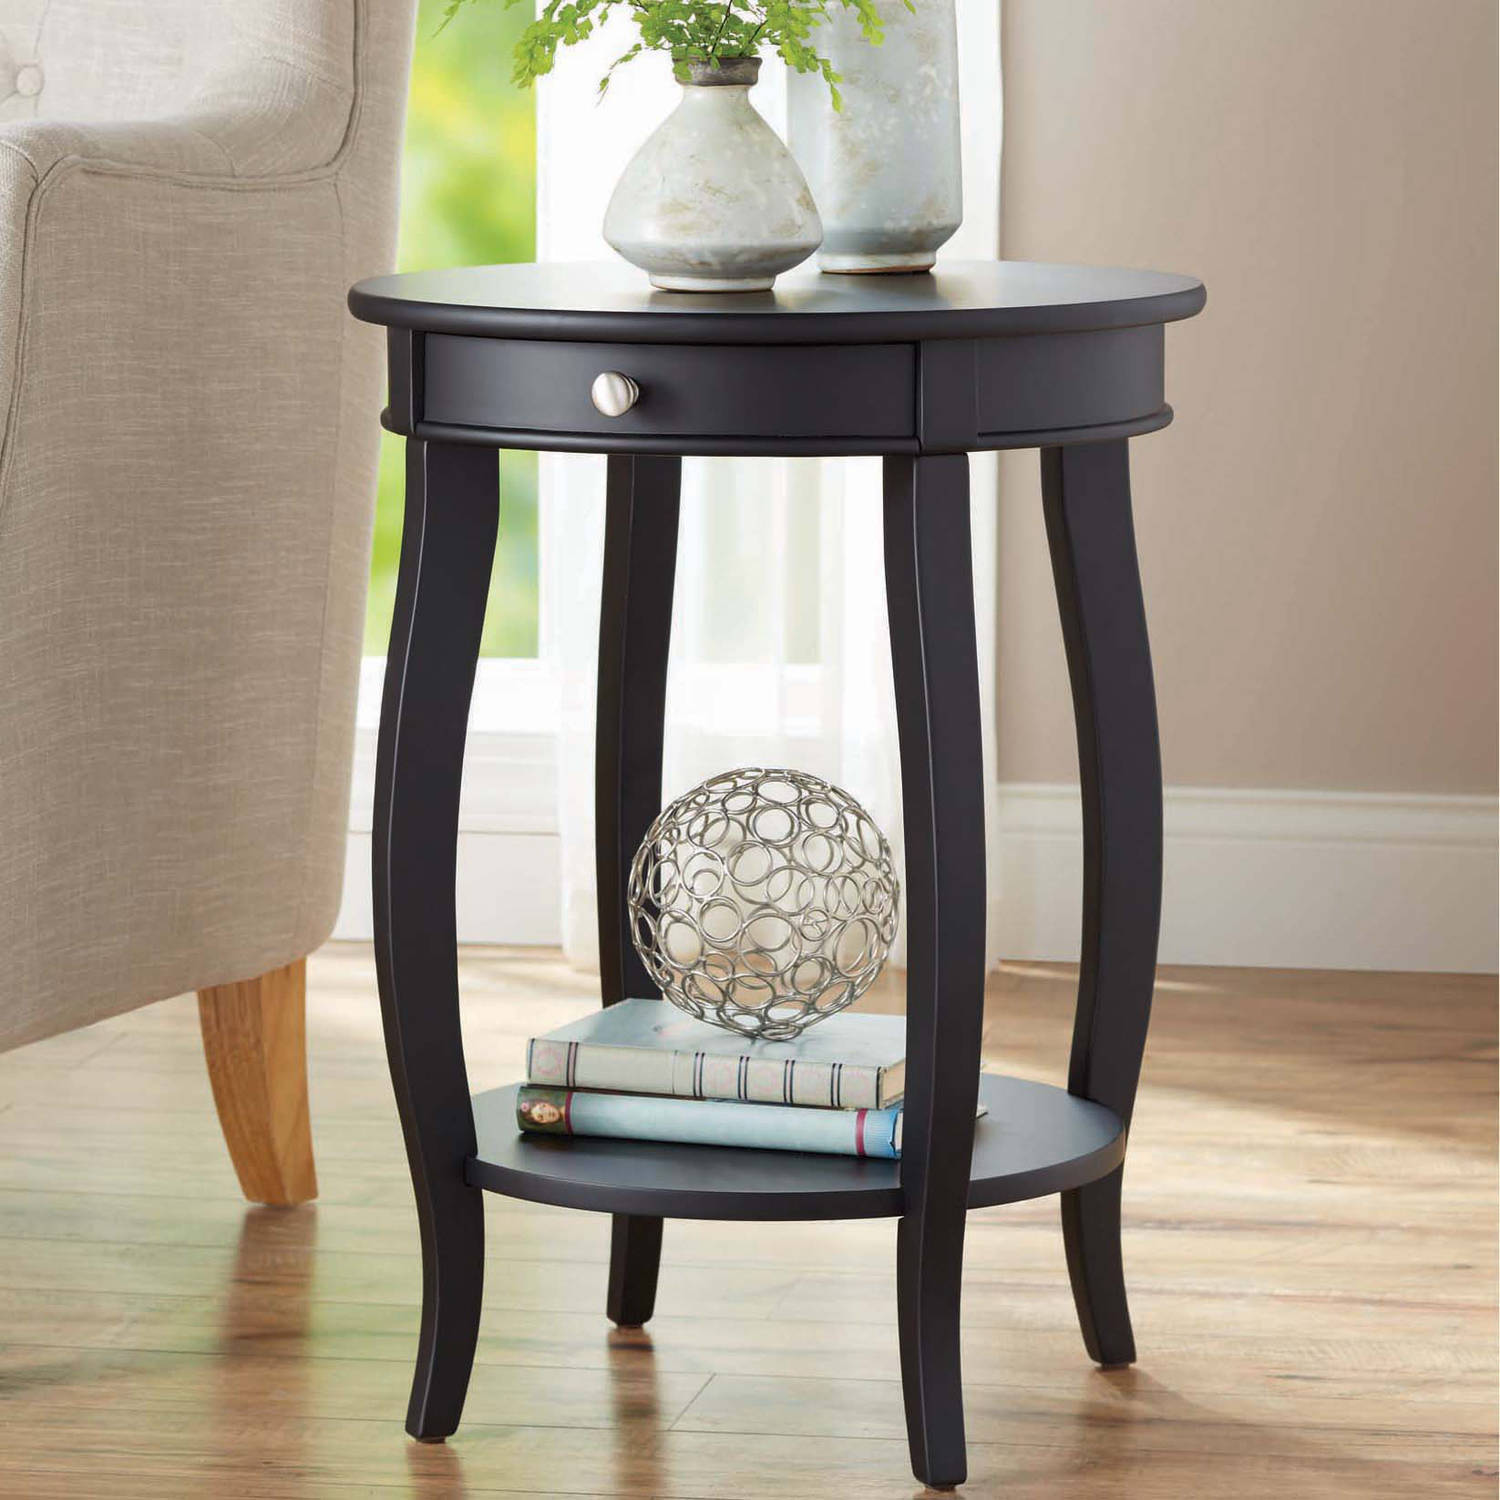 better homes gardens round accent table with drawer multiple gray colors cylinder drum antique white square coffee small living room decorating ideas slim mirrored bedside outdoor